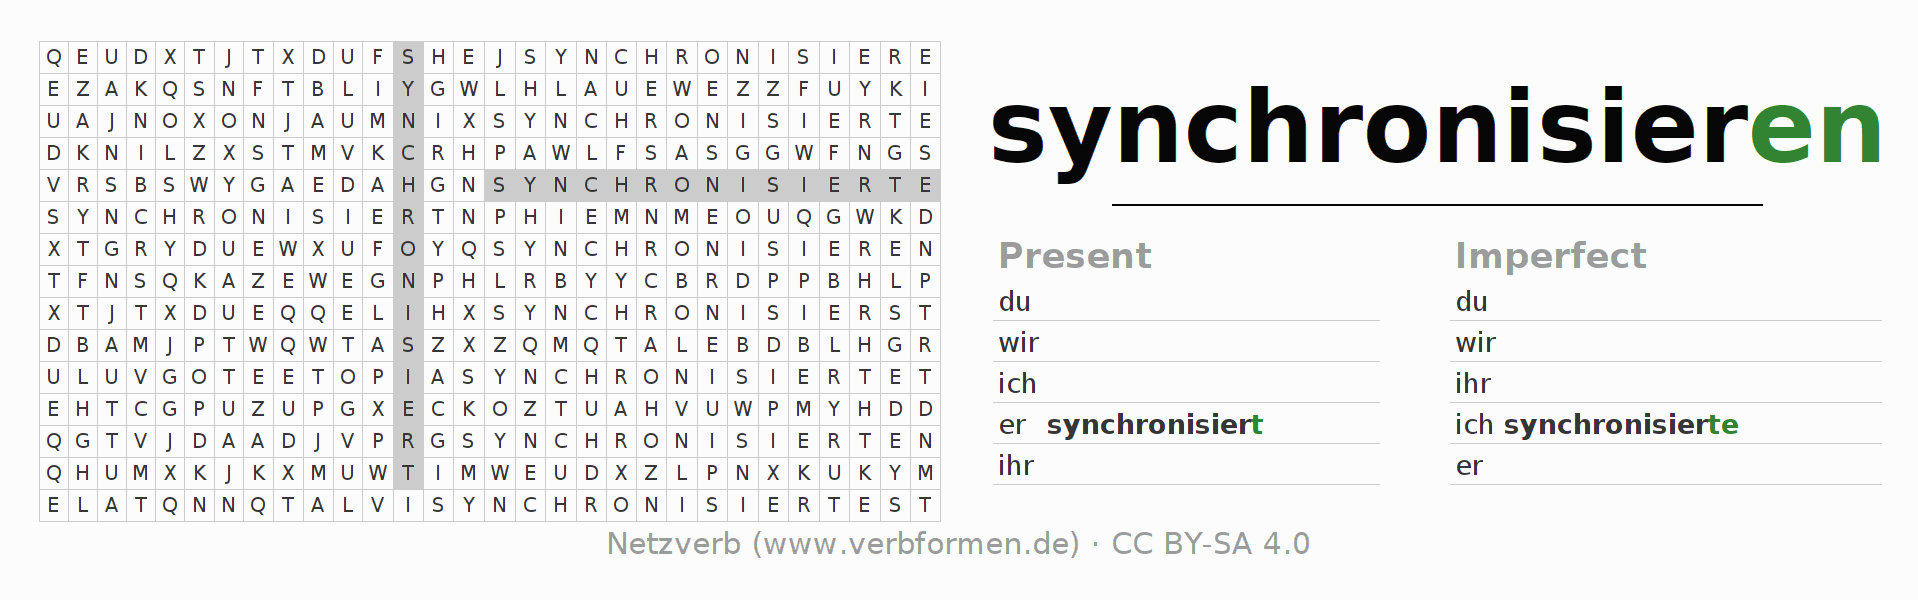 Word search puzzle for the conjugation of the verb synchronisieren